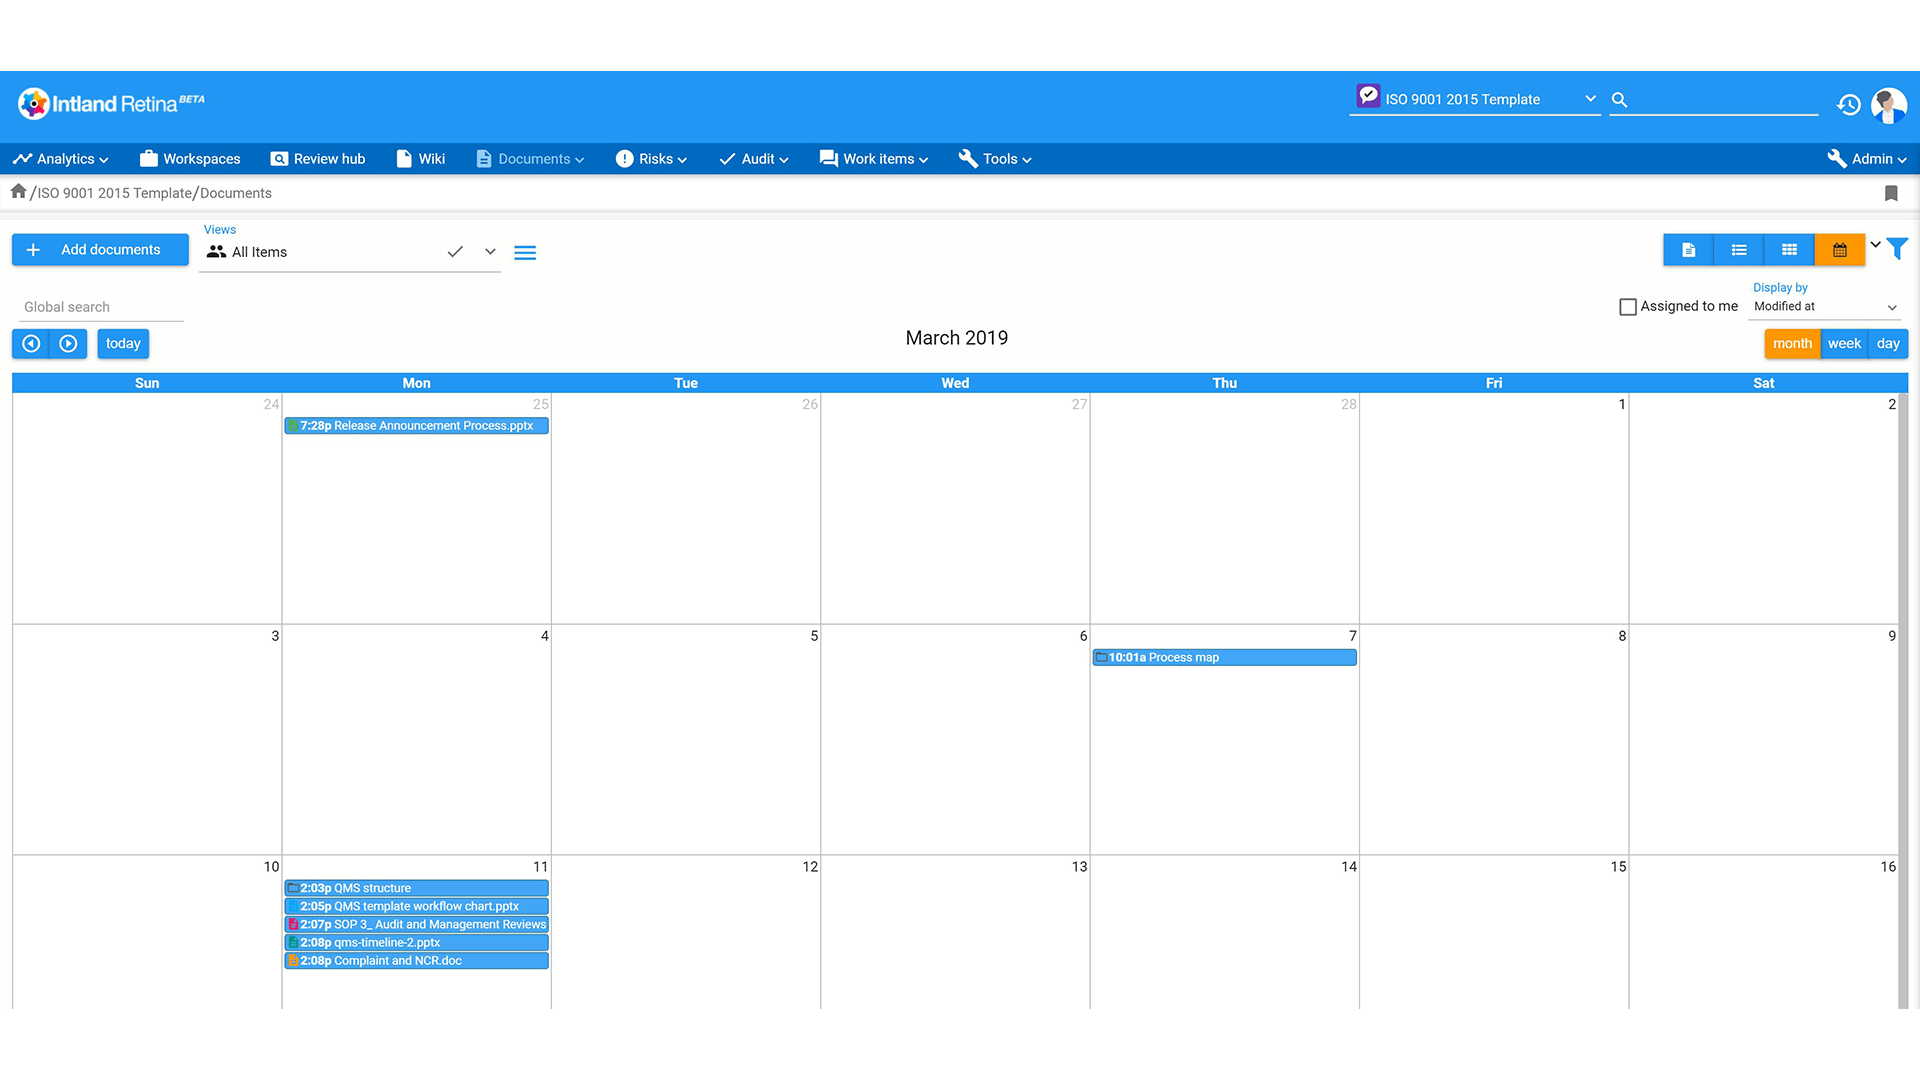 document-lifecycle-management-calendar-view Intland Retina